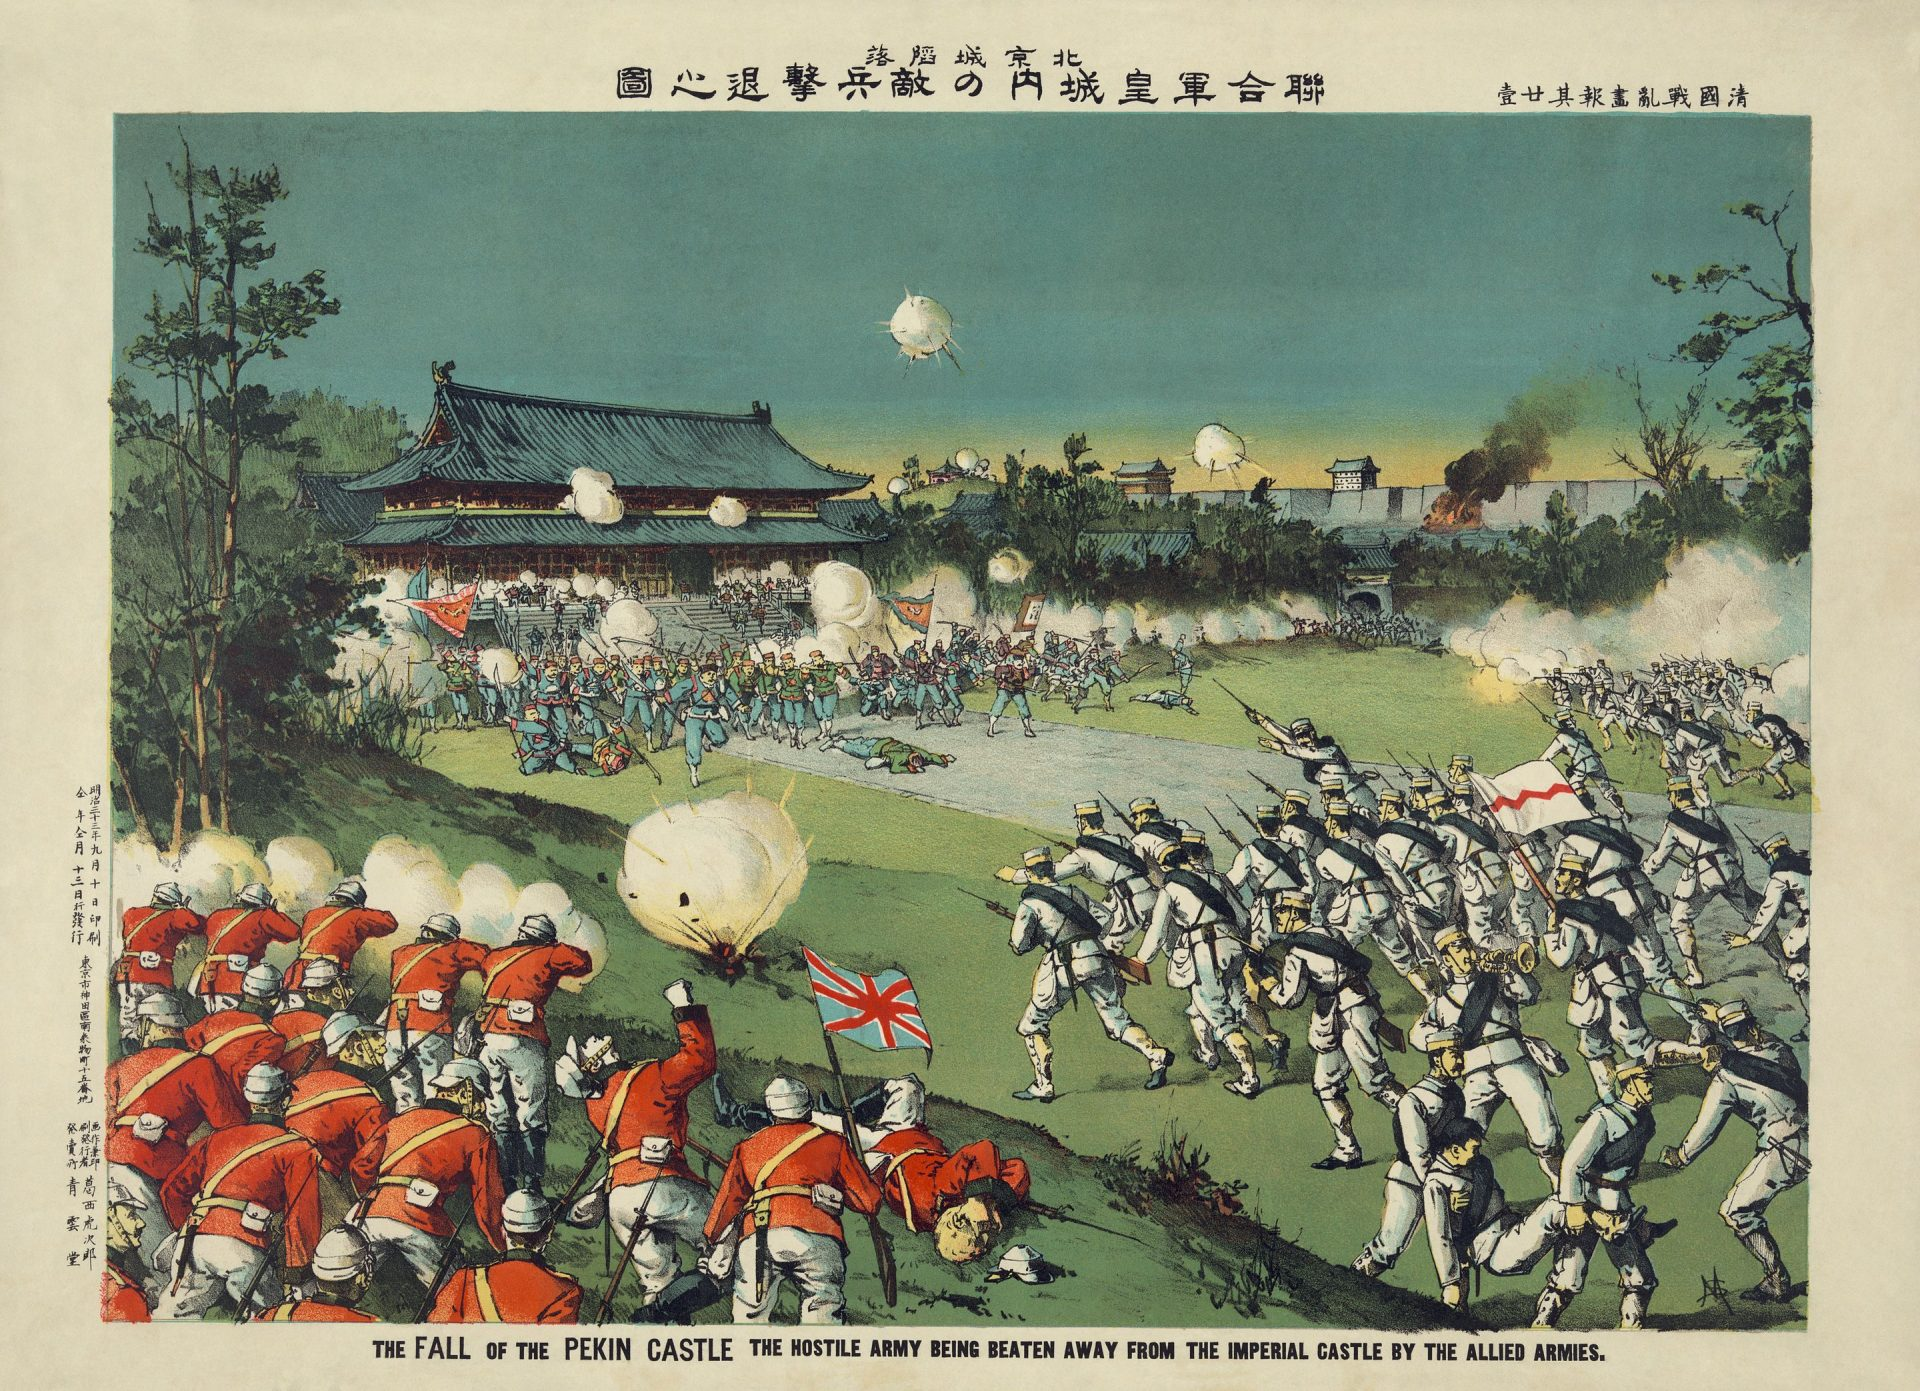 """""""The Fall of the Peking Castle"""" from September 1900. British and Japanese soldiers assaulting Chinese troops. (Image Credit: Torajirō Kasai [Public domain], via Wikimedia Commons)"""